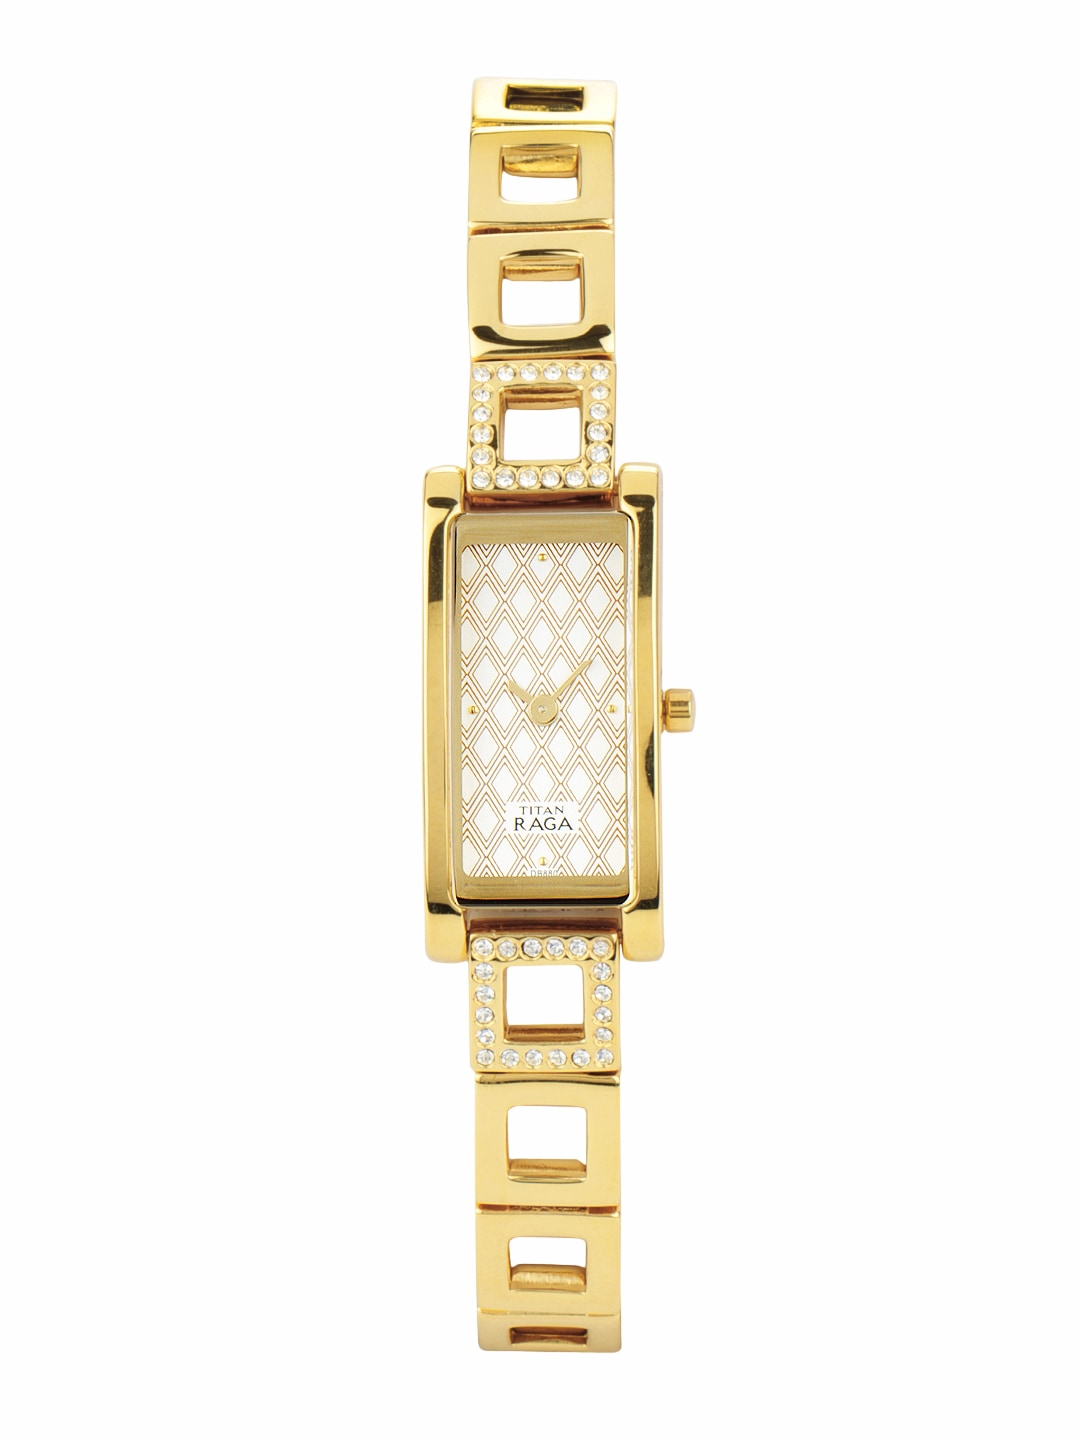 Titan Raga Rose Gold Diamond Watches